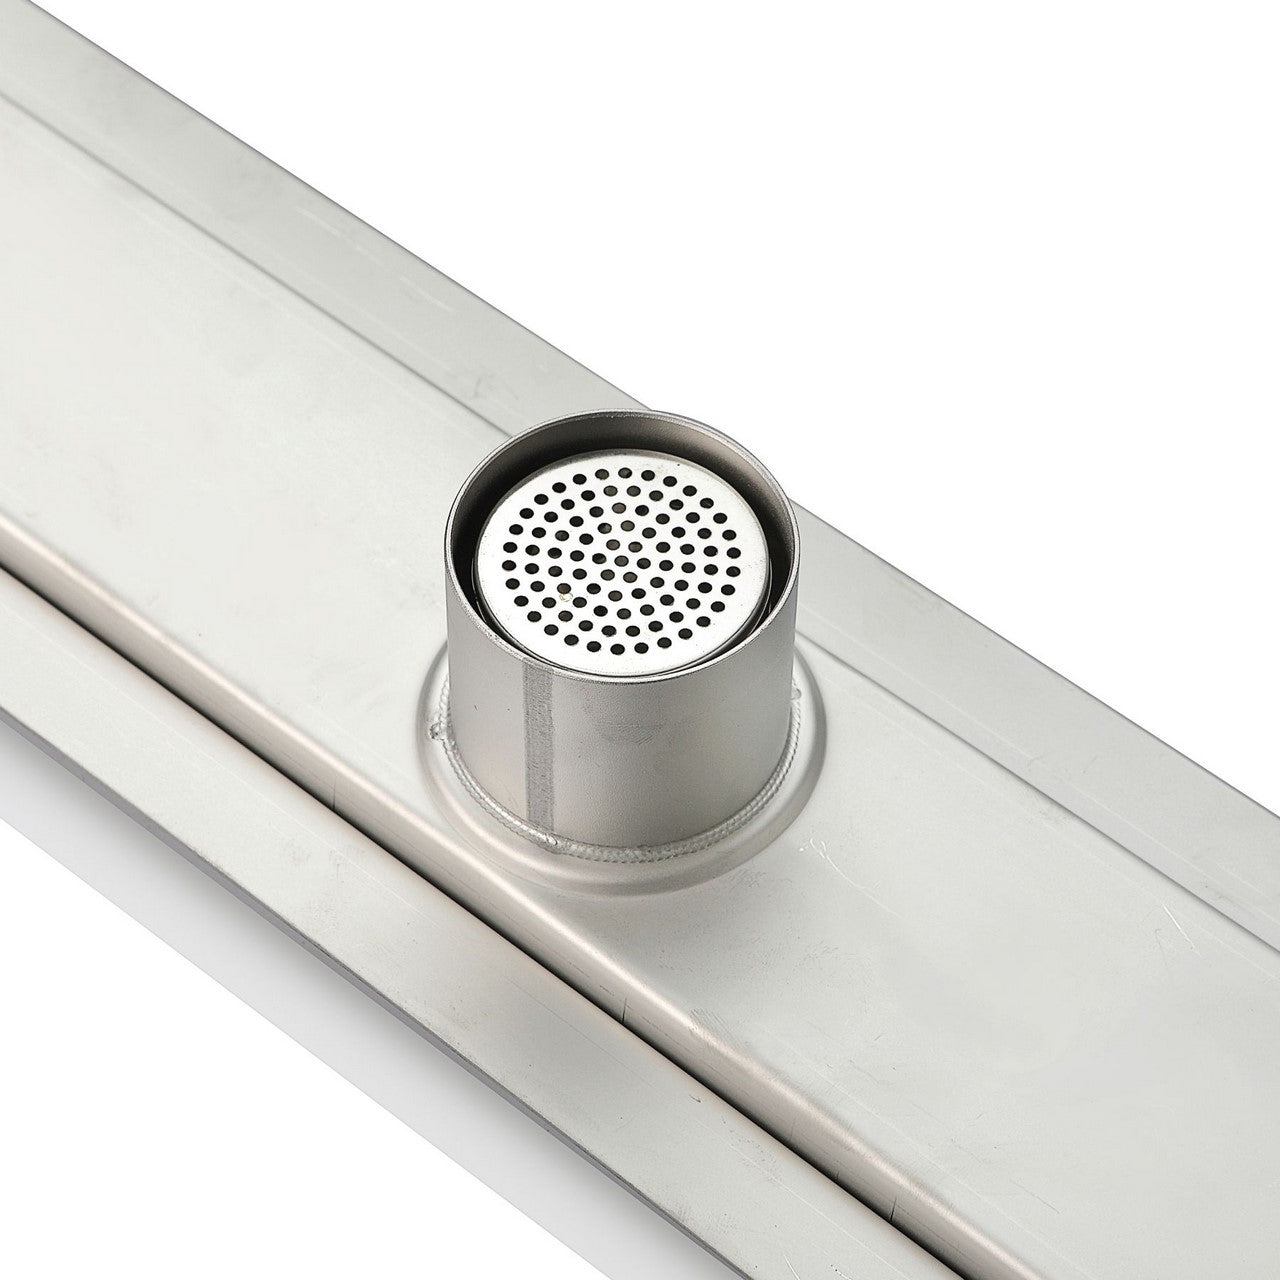 TILE GRATE- 48″ Stainless Steel Linear Shower Drain - Vanity Sale